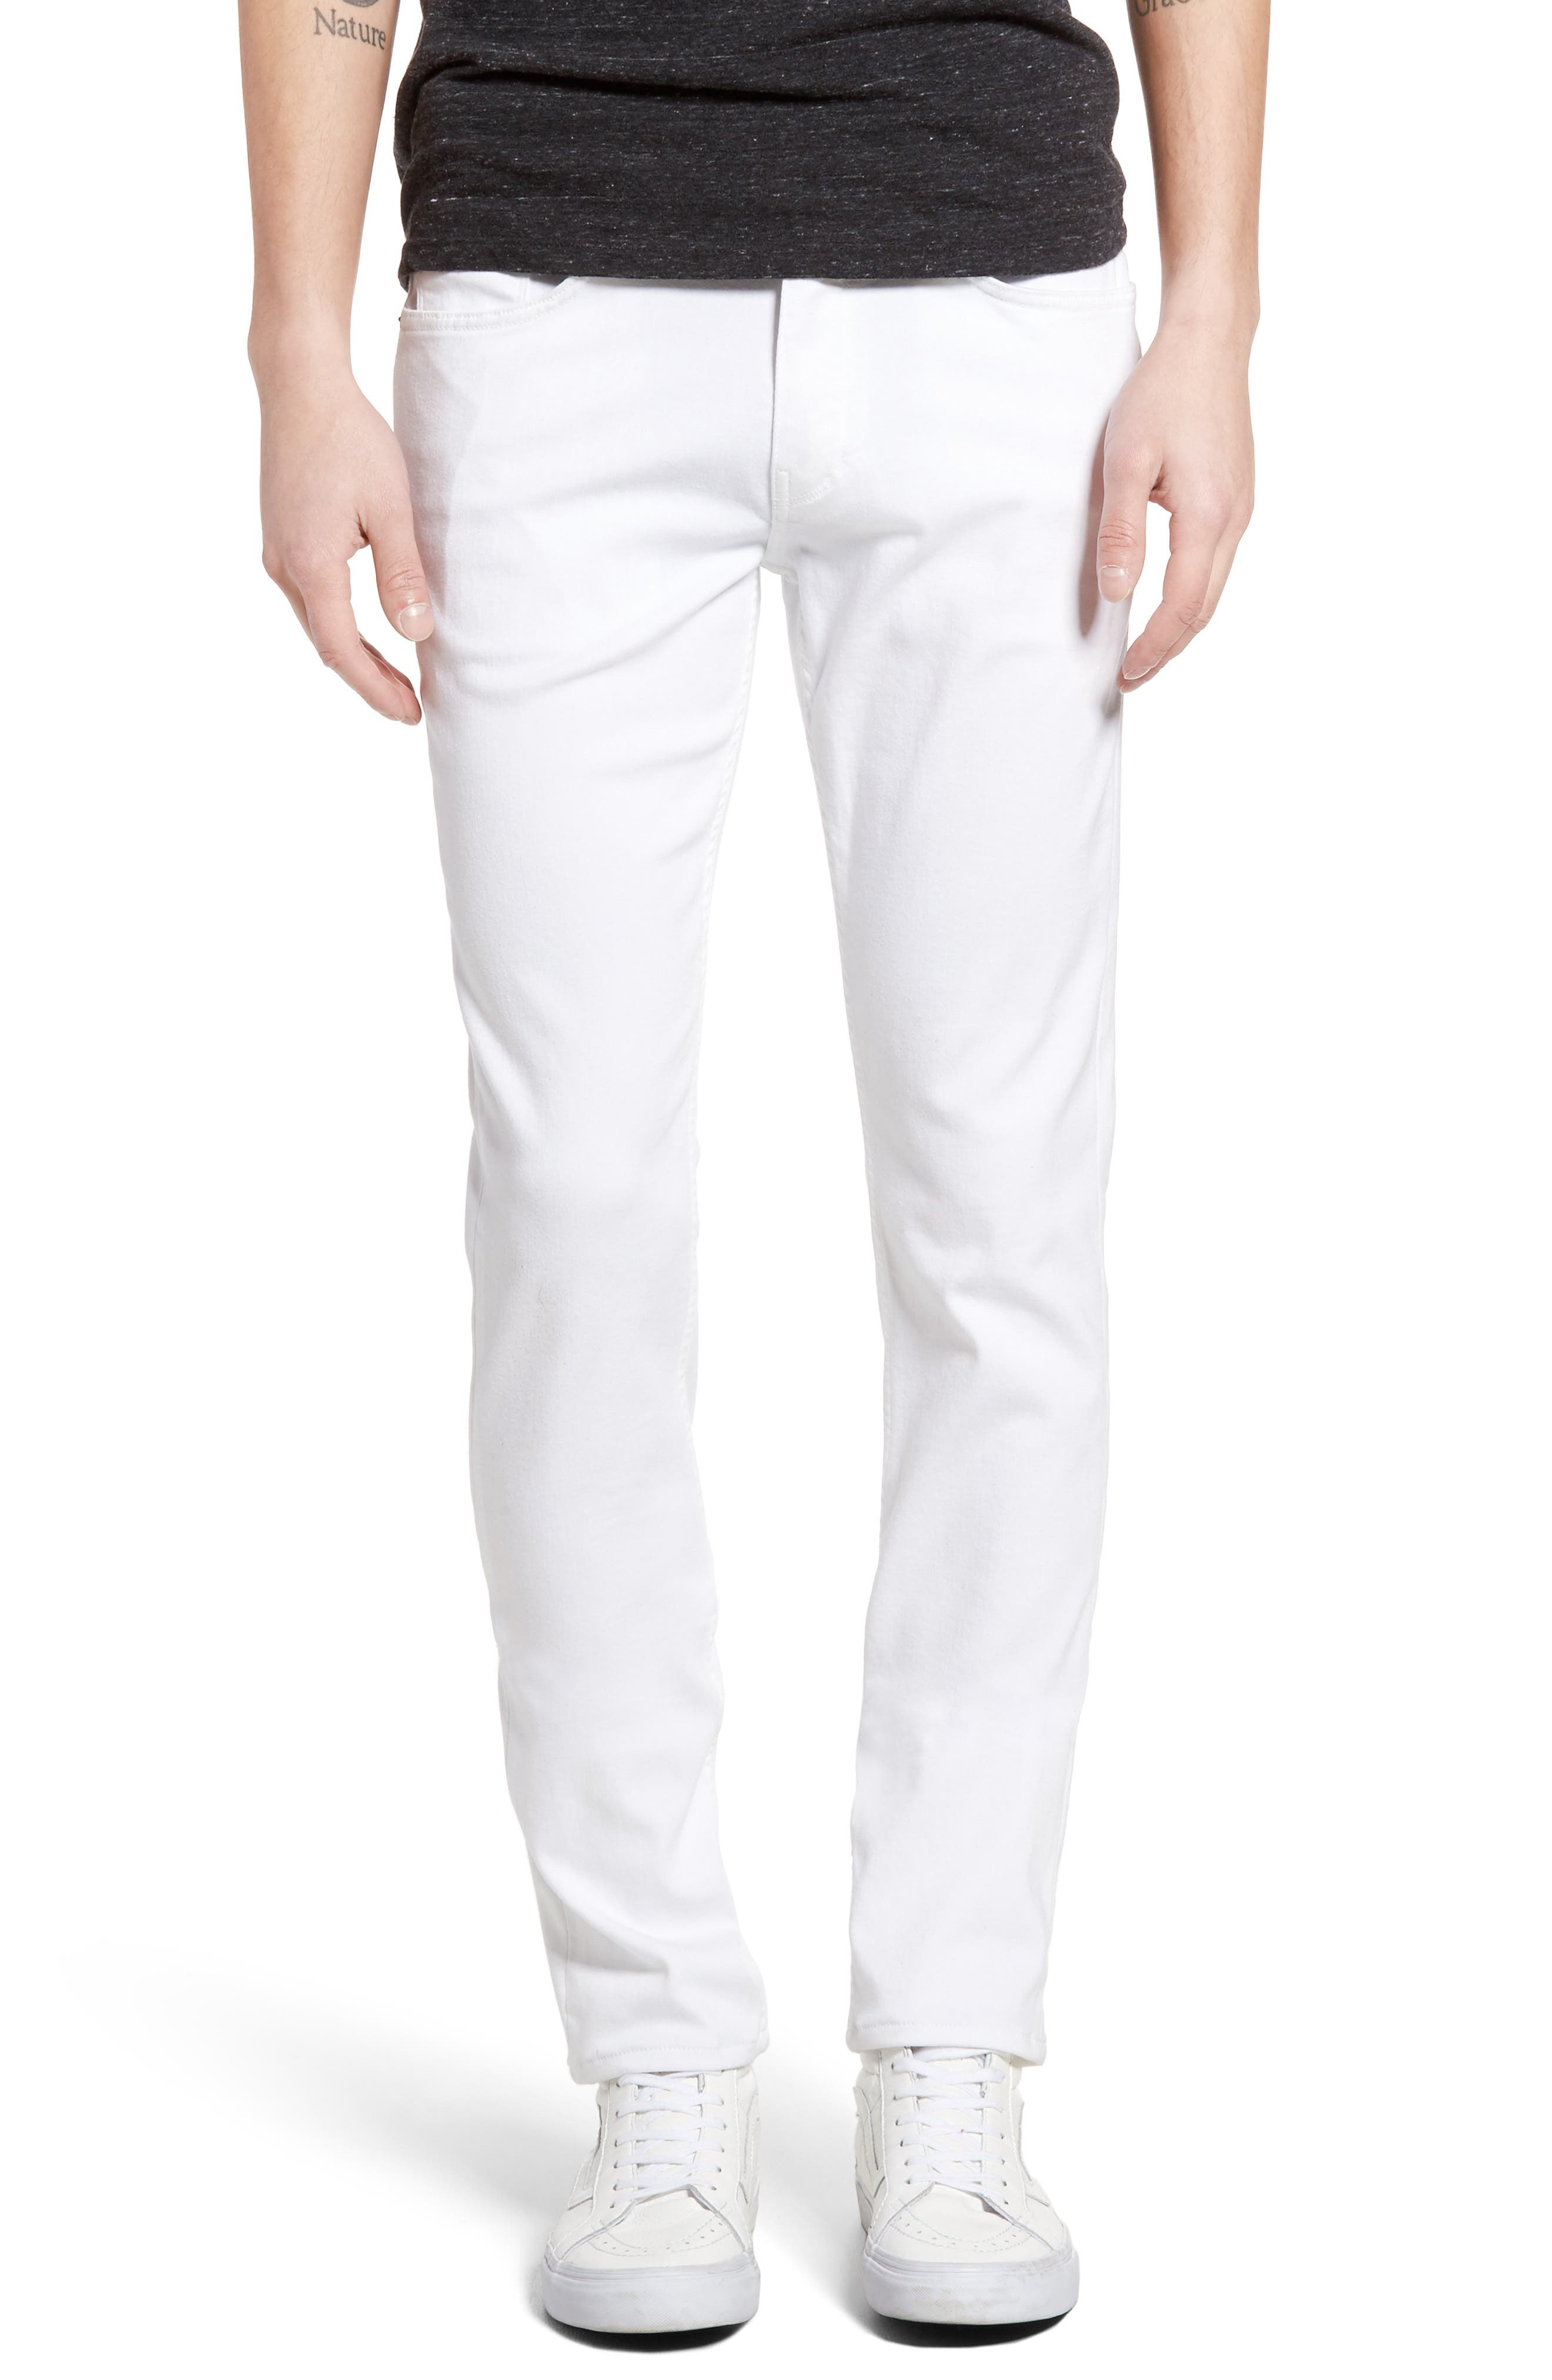 Men's White Wash Jeans, Relaxed, Bootcut Fit & Selvedge Denim ...